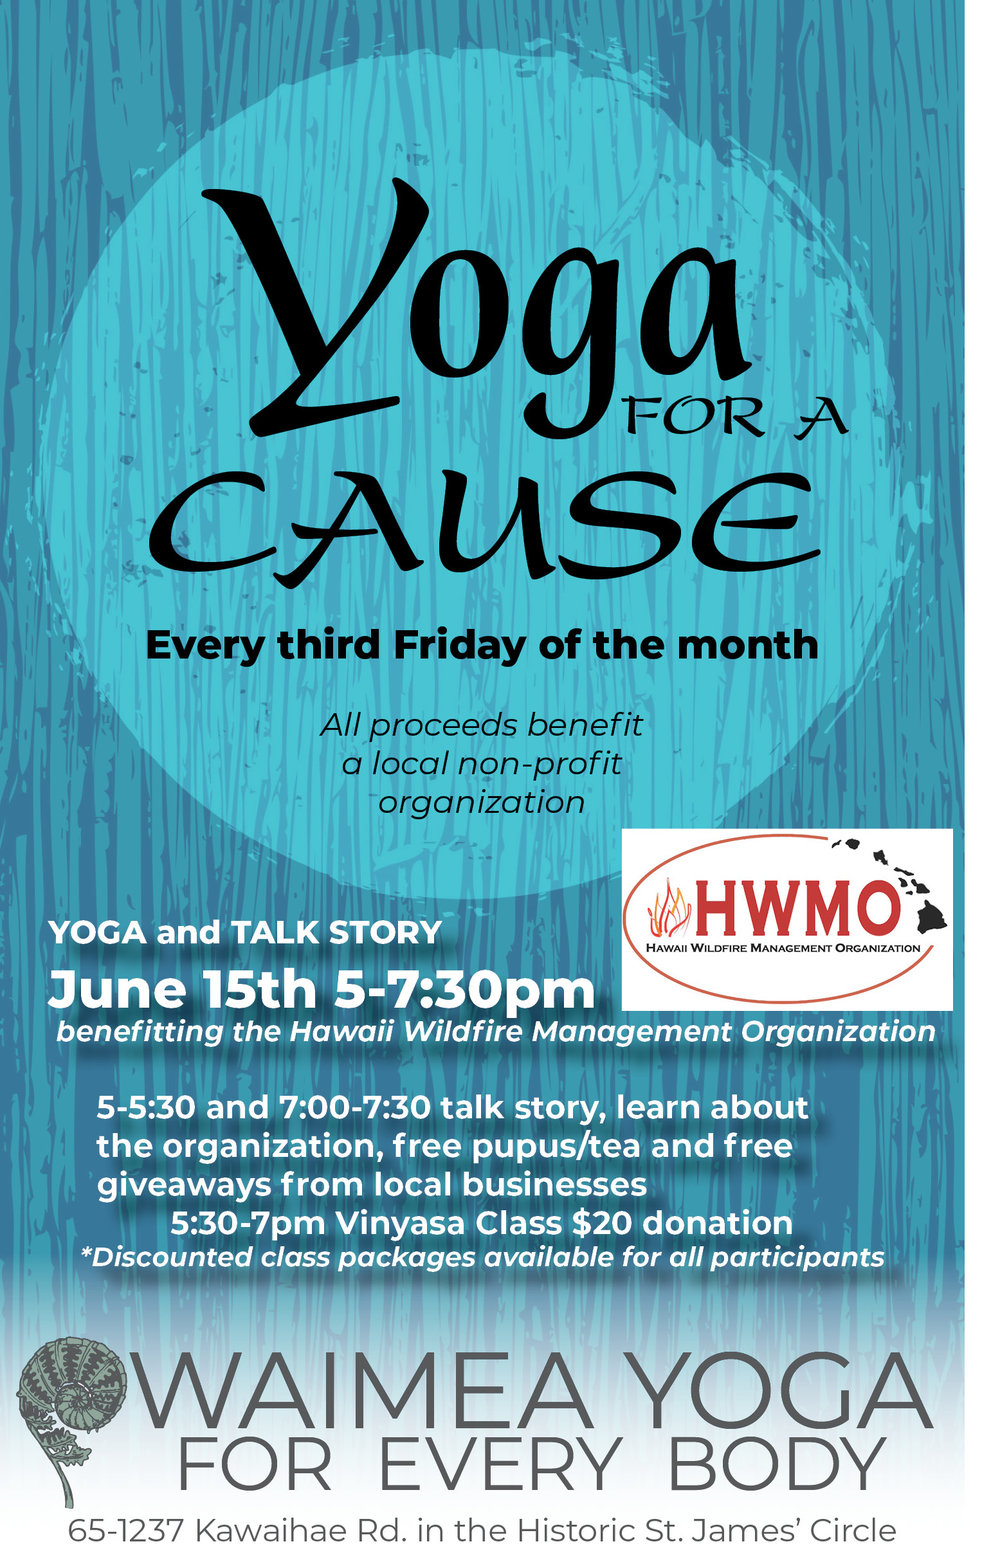 yoga for a cause-hwmo fundraiser flyer-waimea yoga-2018_6_15.jpg